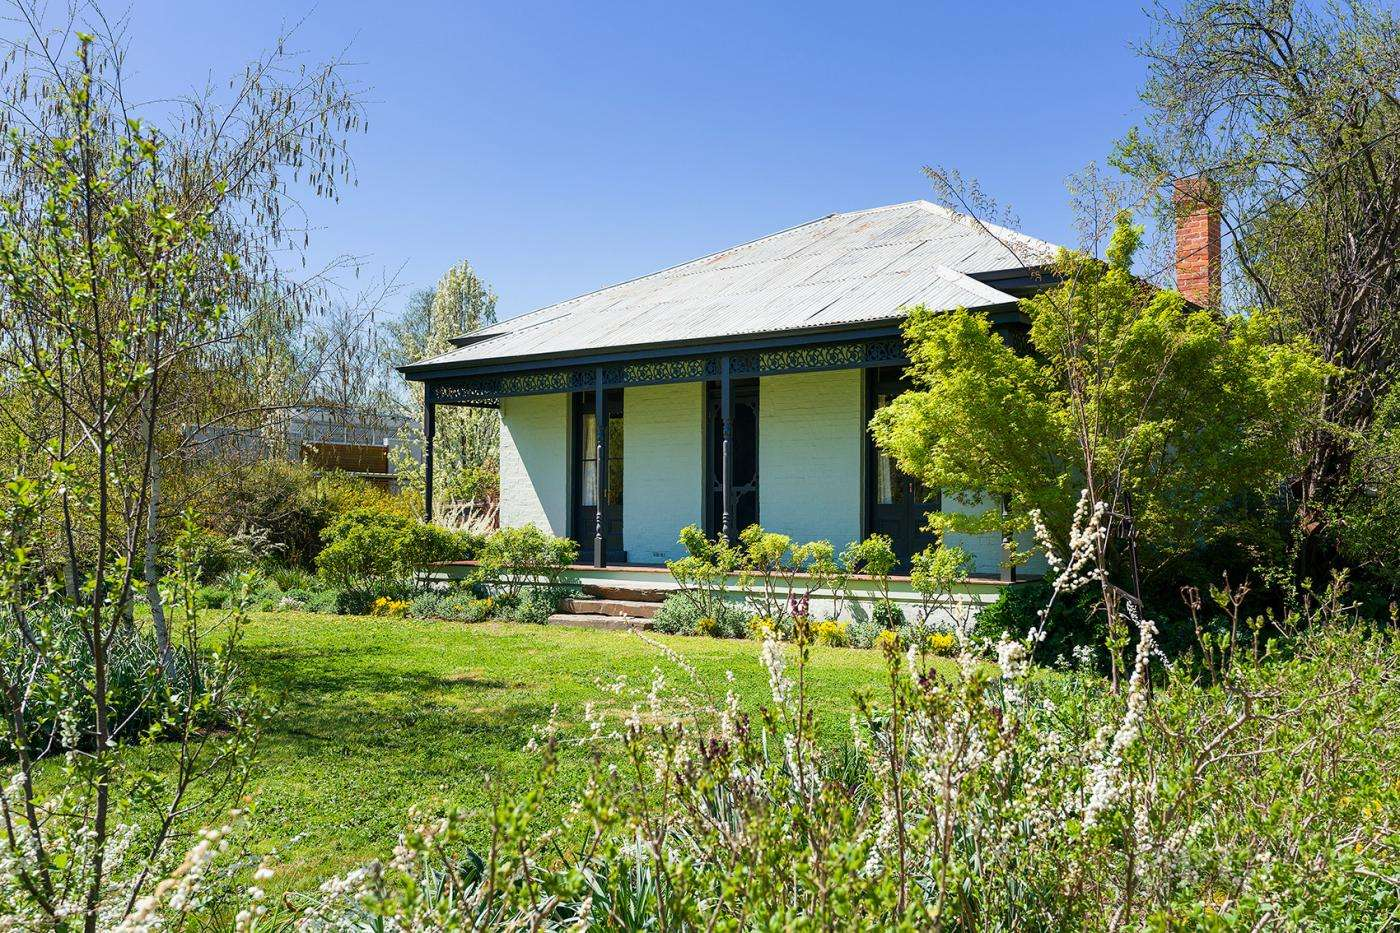 Main view of Homely house listing, 41 Main Road, Campbells Creek, VIC 3451